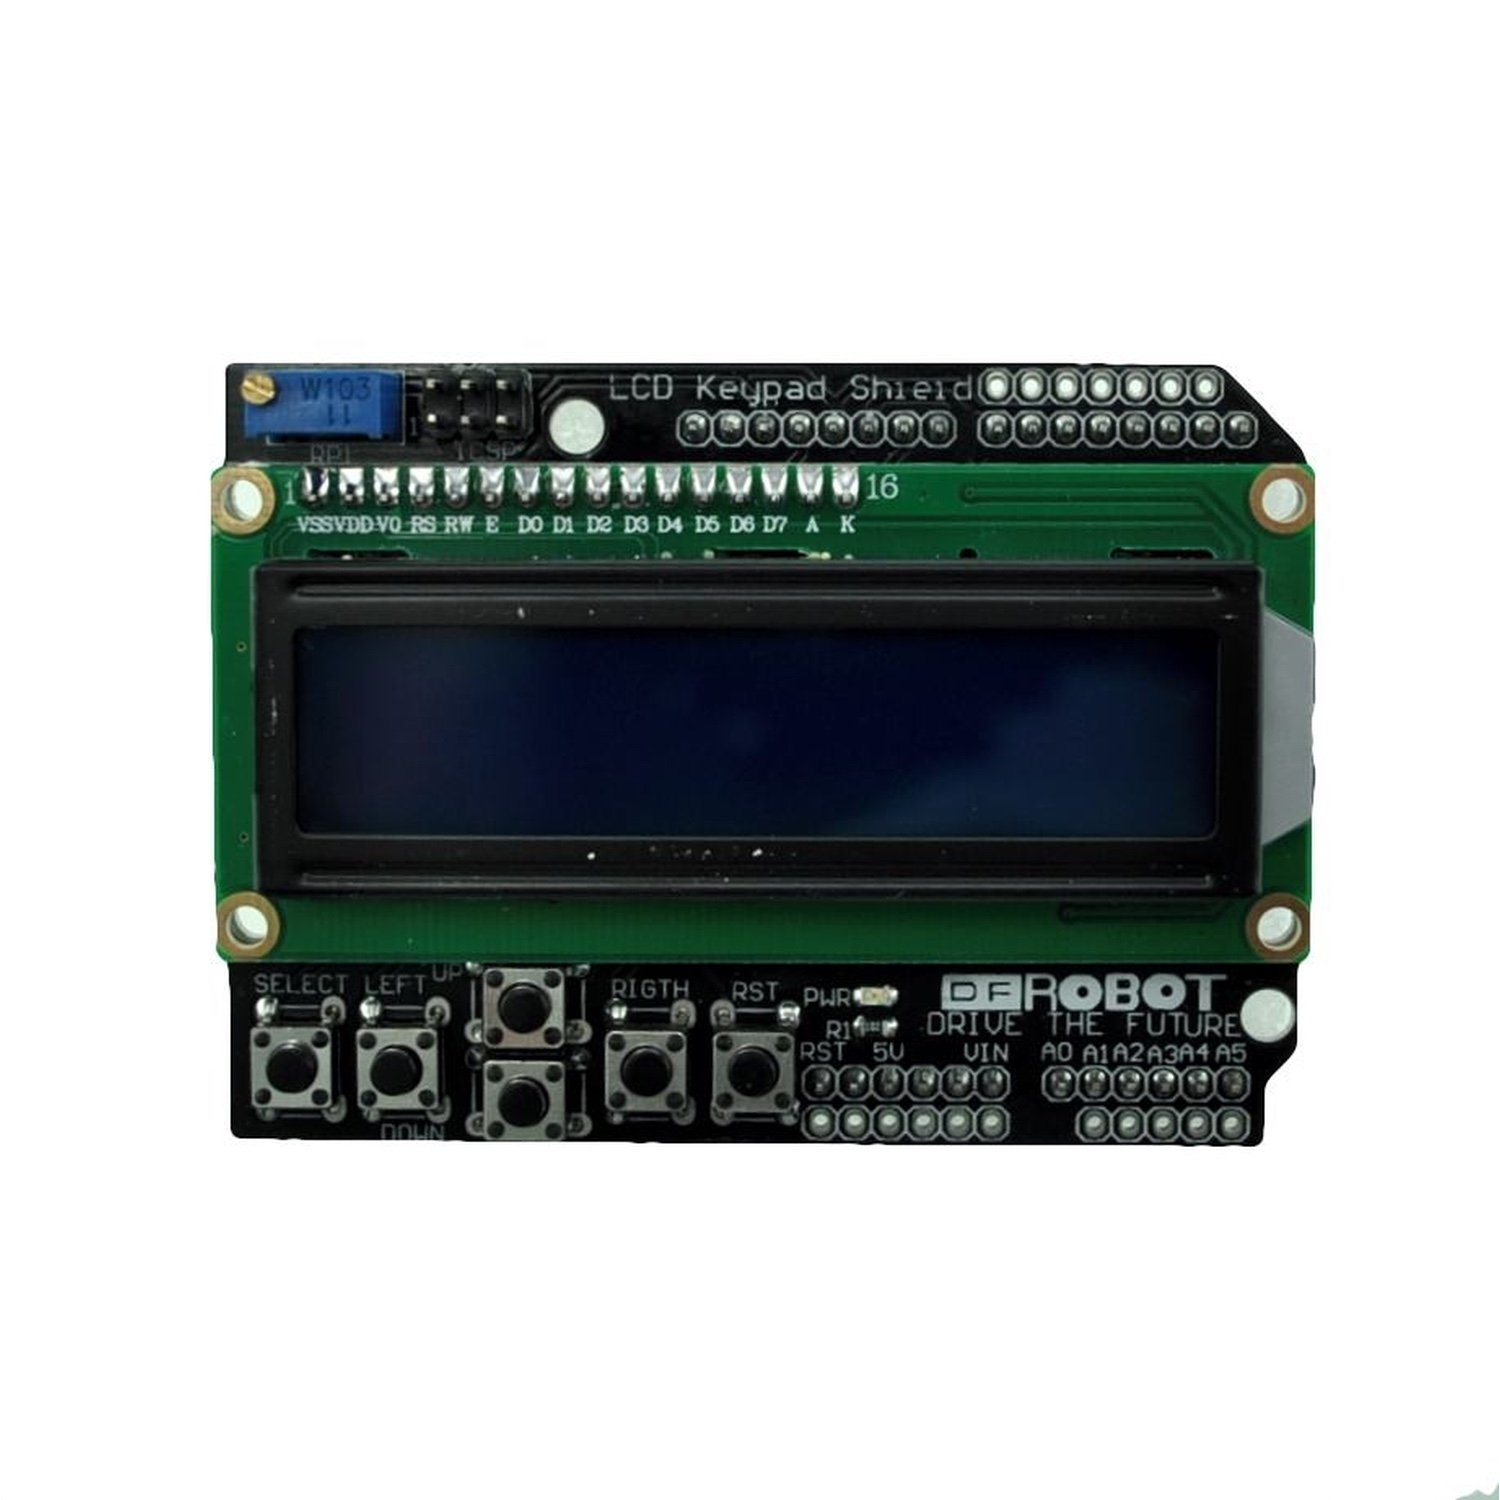 LCD1602 Keypad Shield for Arduino [Arduino Compatible] 20pcs 10pin female tall stackable header connector socket for arduino shield black